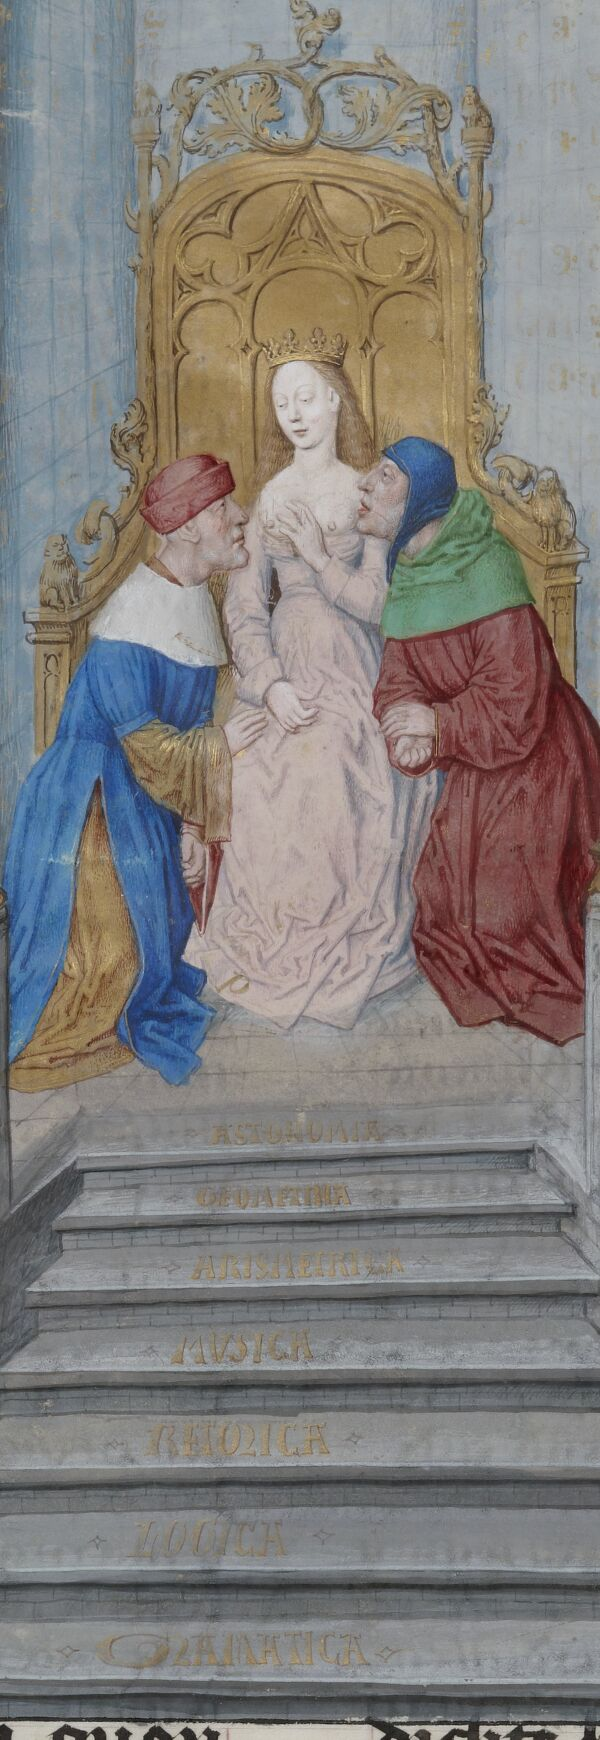 BNF N1, fol. 12v Lady Philosophy on her throne